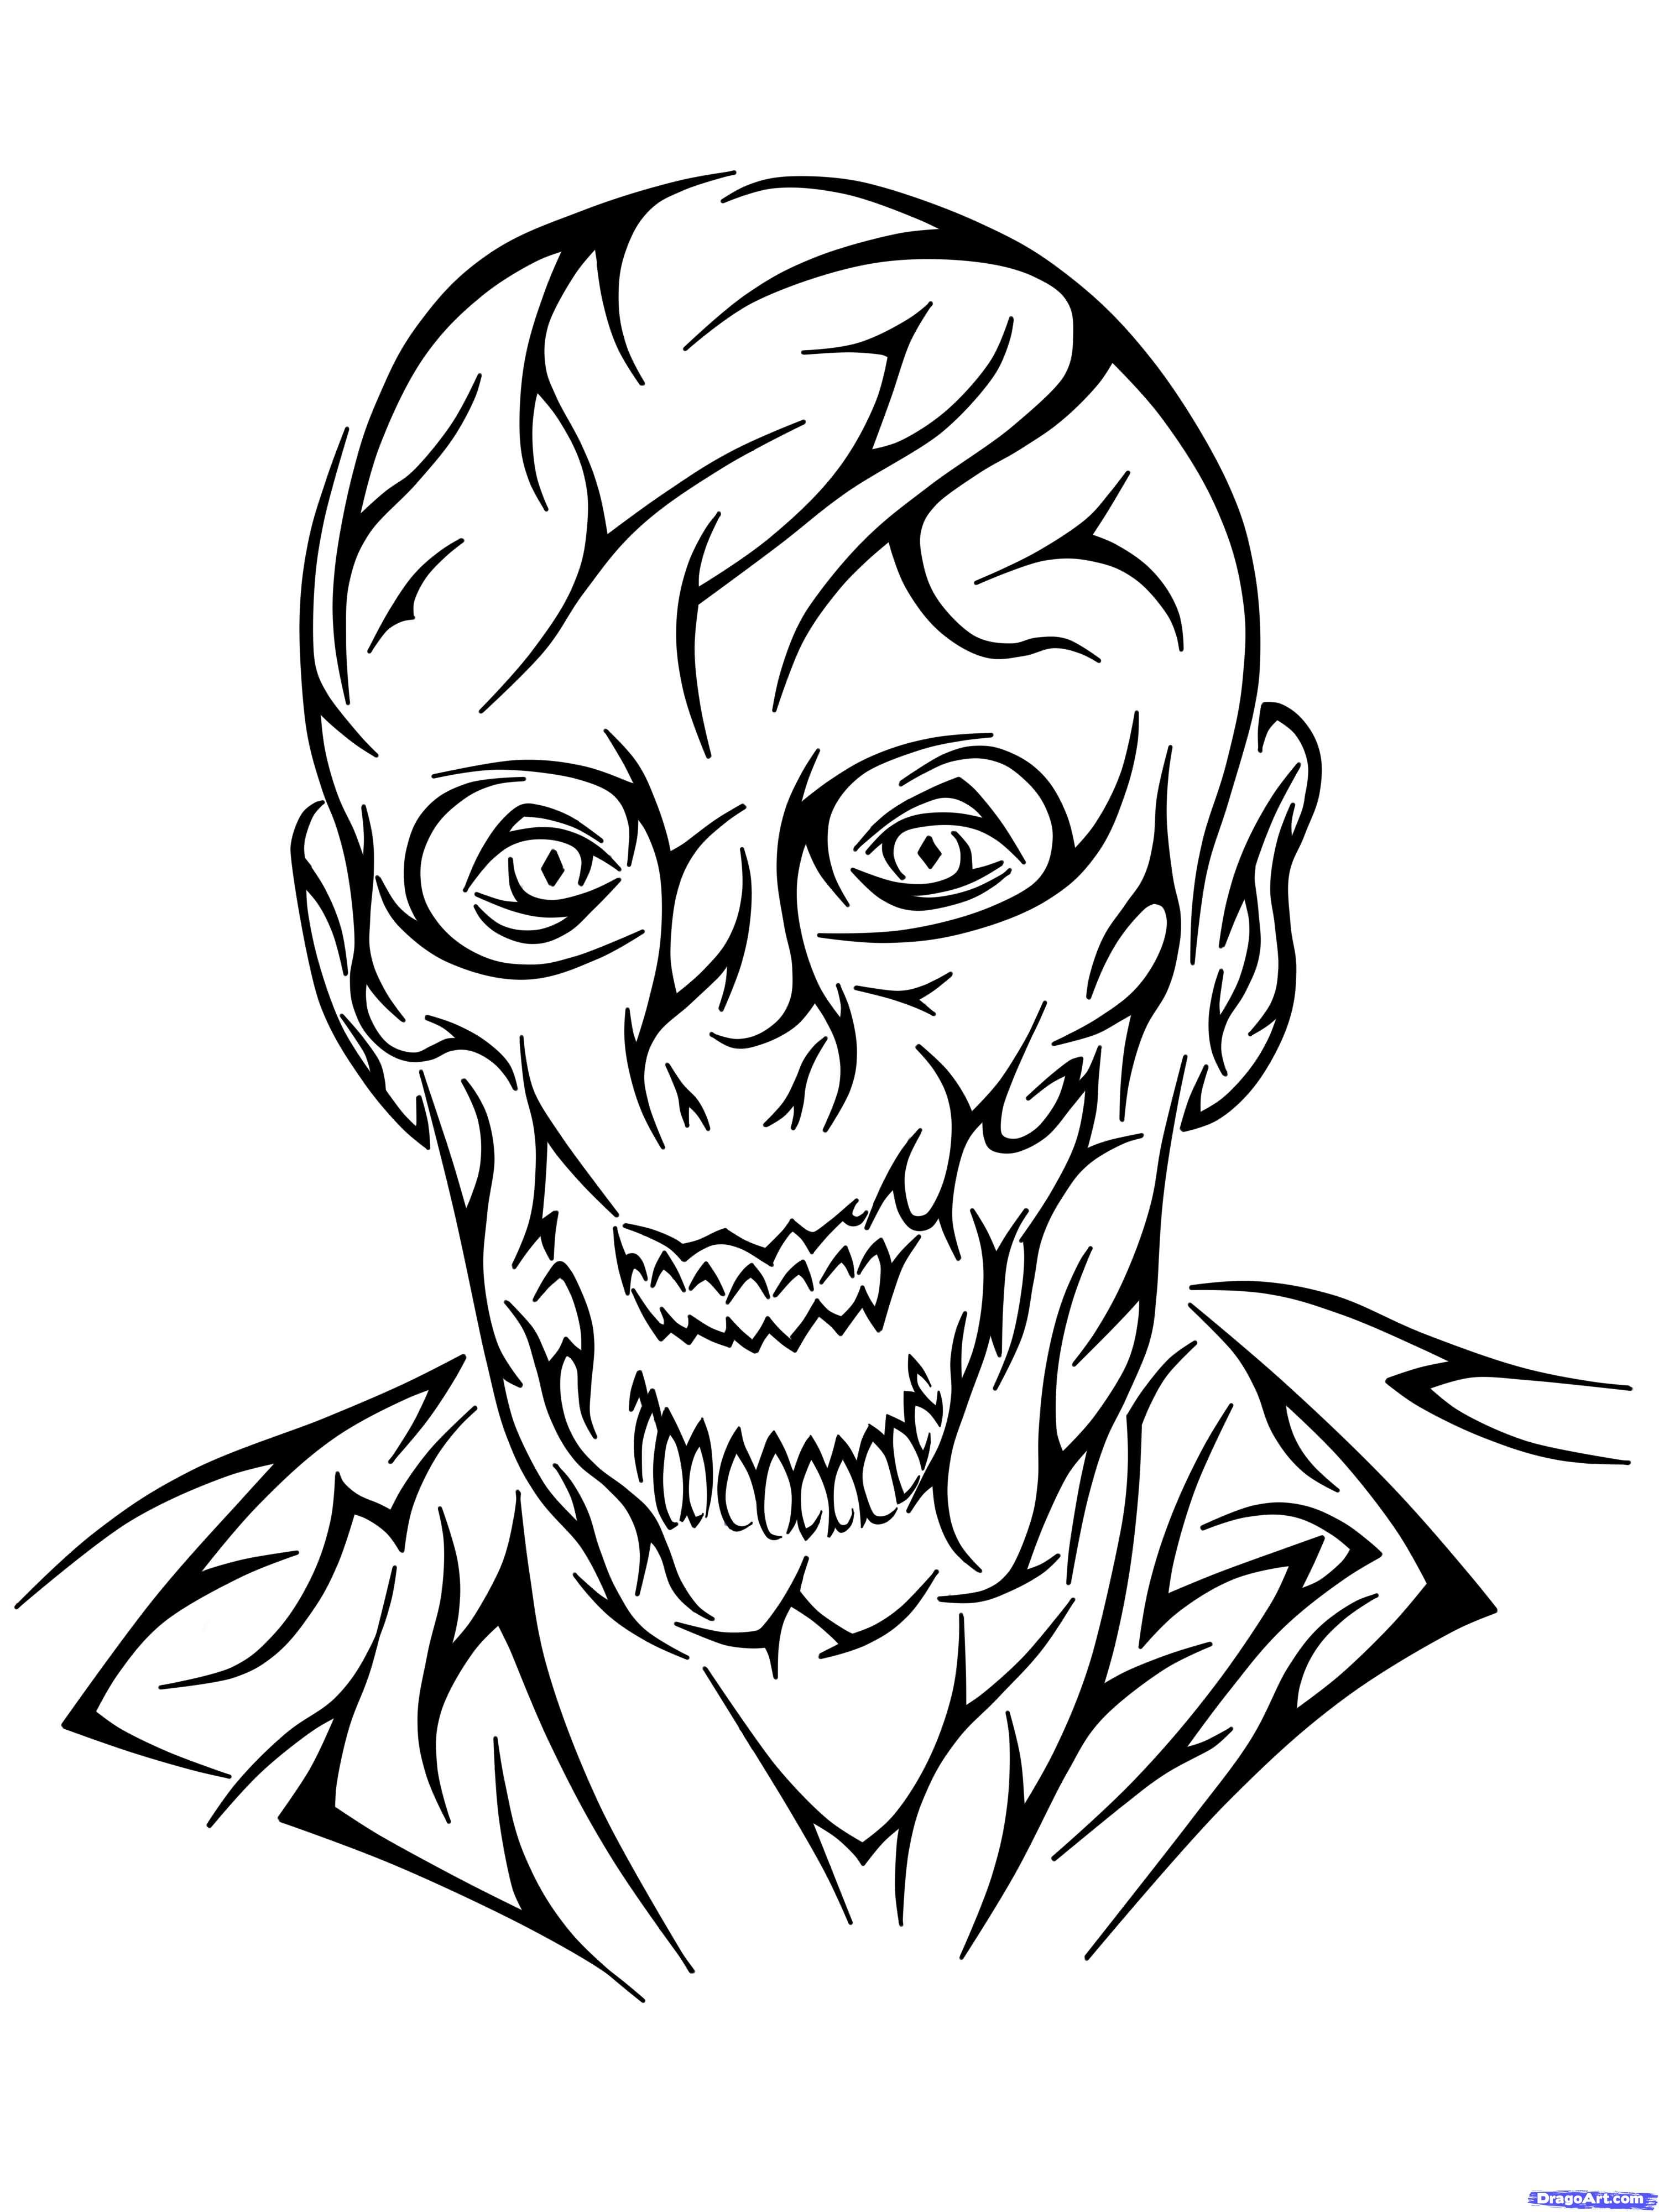 3 Zombie Tattoo Designs Ideas